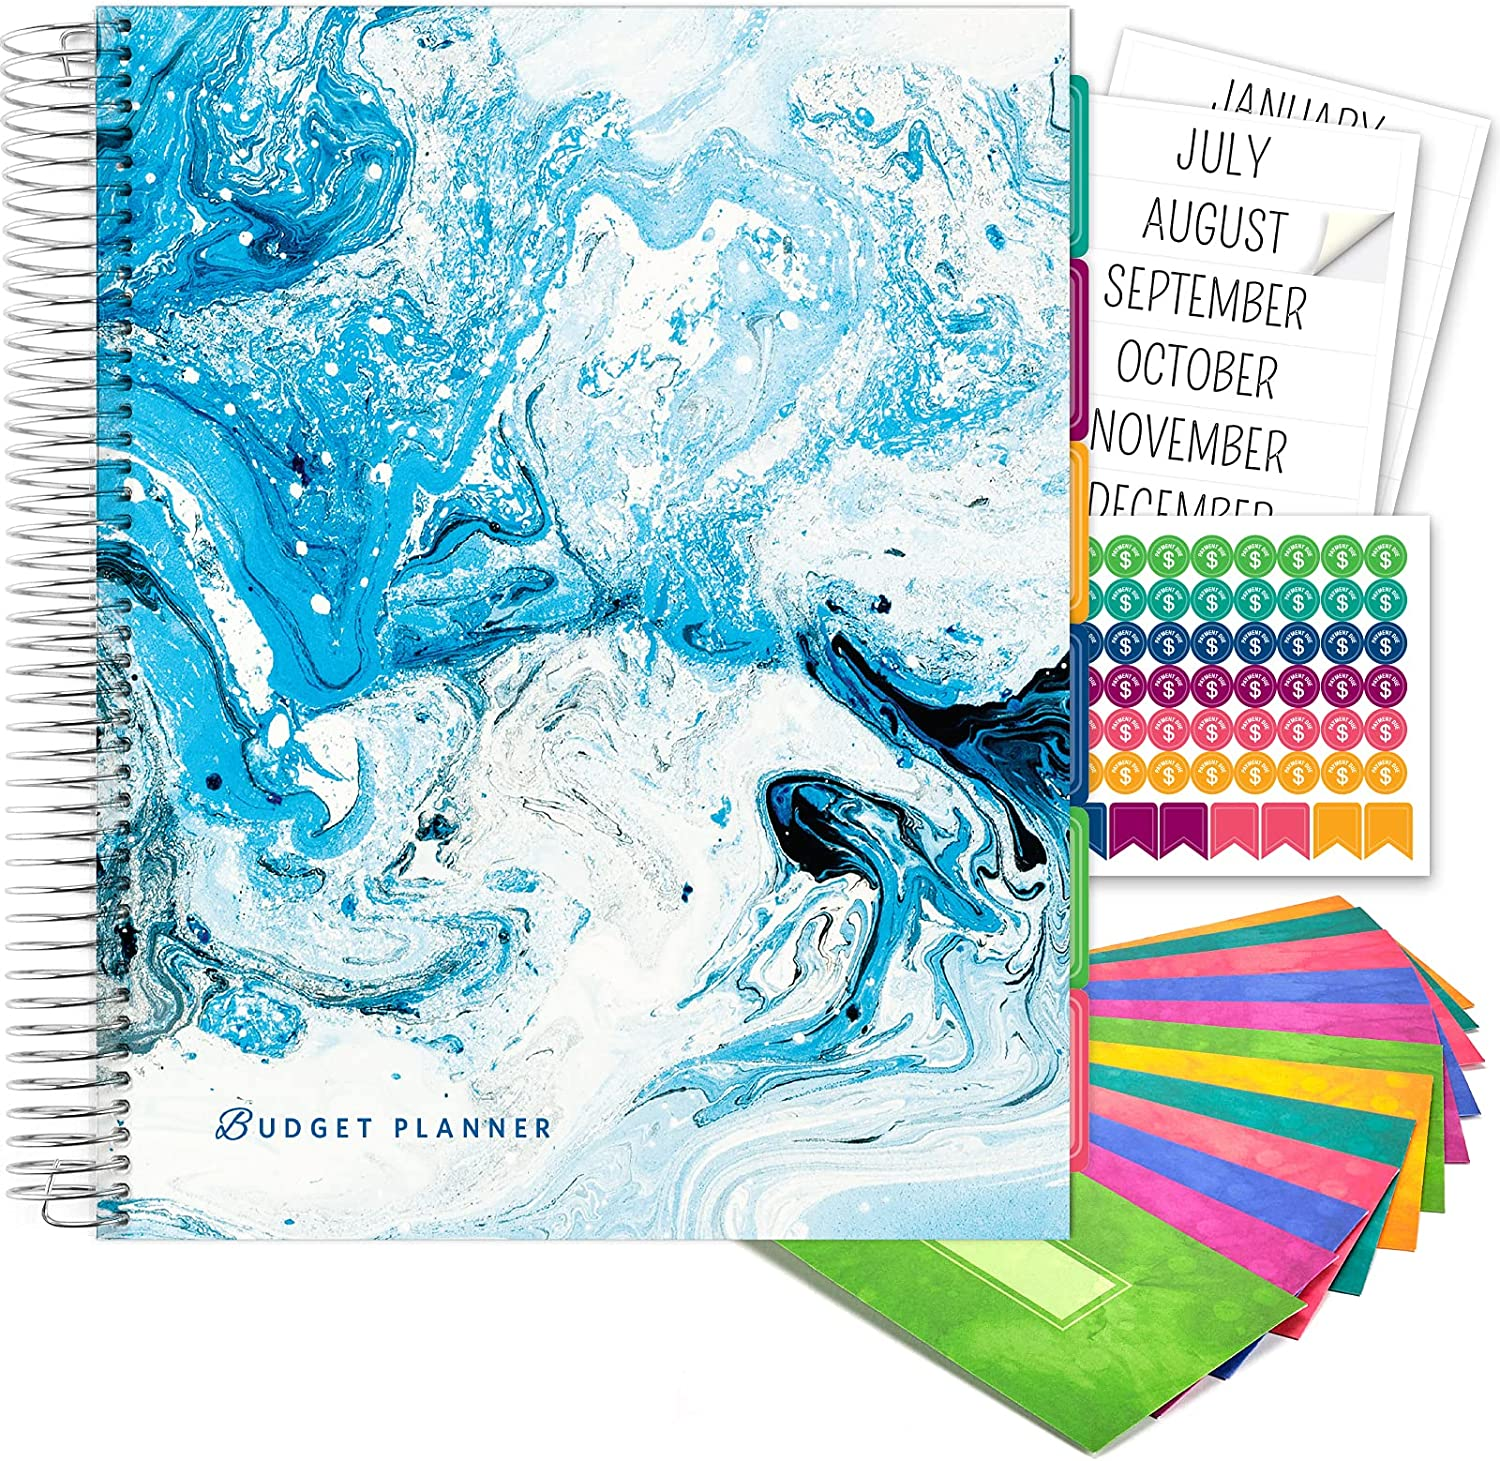 Budget Planner & Monthly Bill Organizer with 12 Envelopes and Pockets. Expense Tracker Notebook and Financial Planner Budget Book to Control Your Money. Large Size (8.5